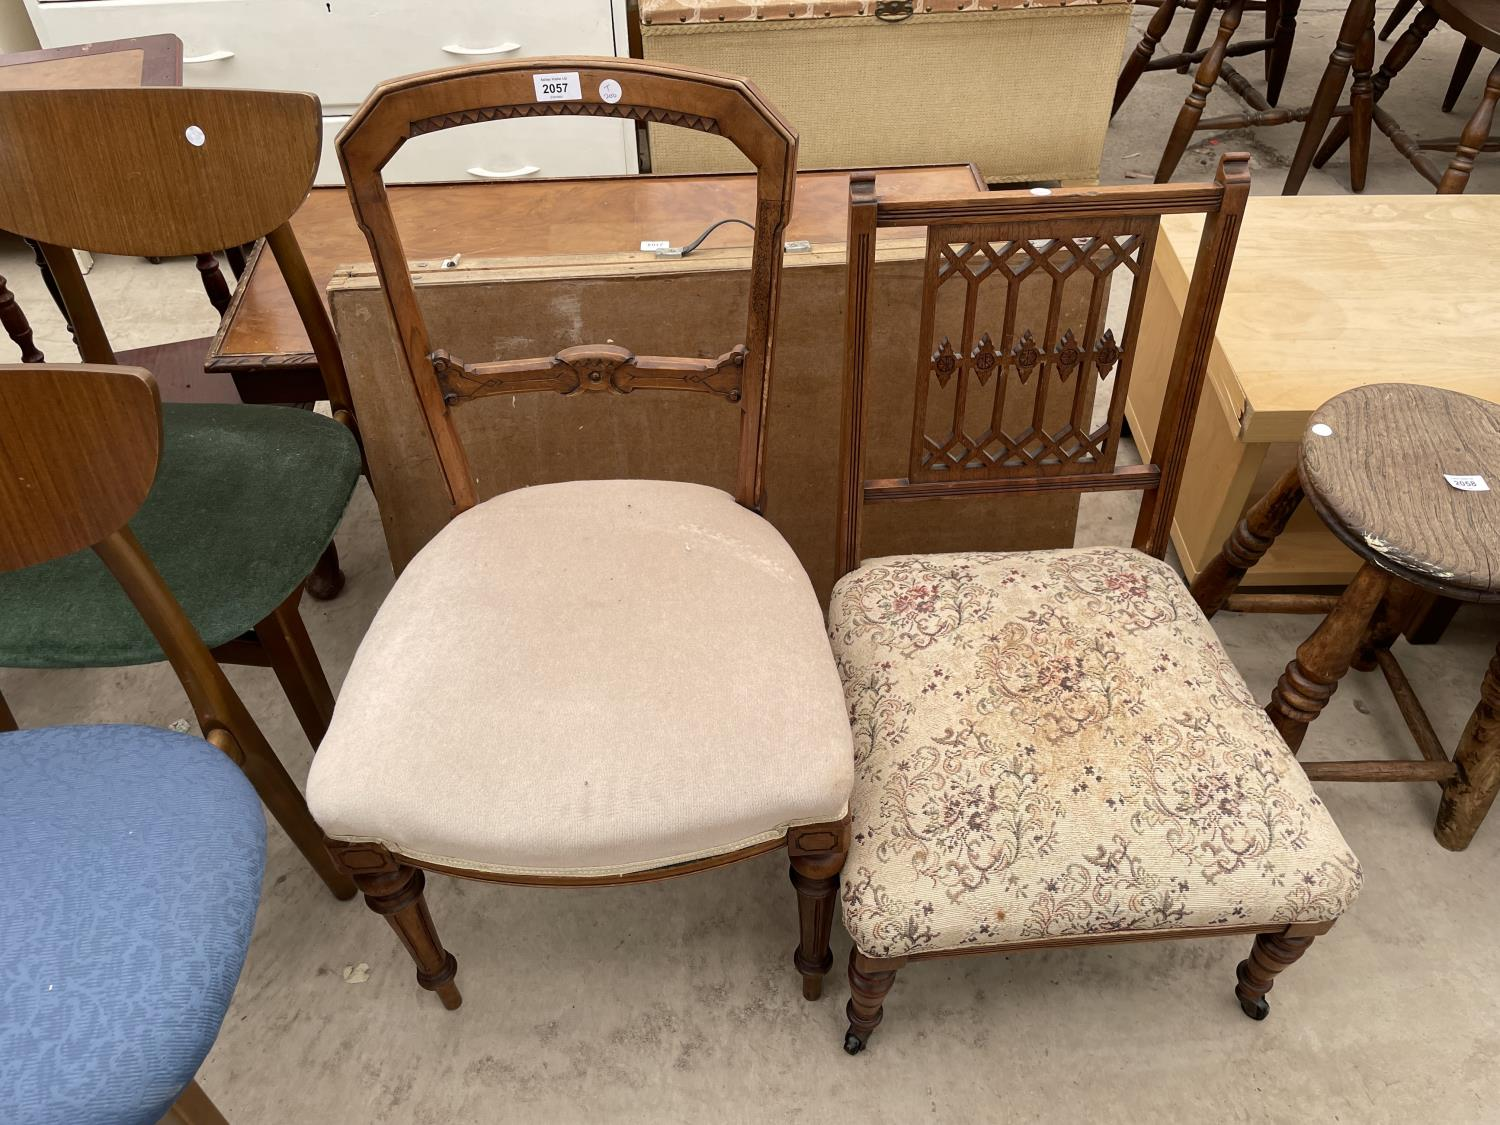 A SET OF FIVE MID 20TH CENTURY STYLE DINING CHAIRS WITH WHALE FIN BACKS - Image 7 of 10